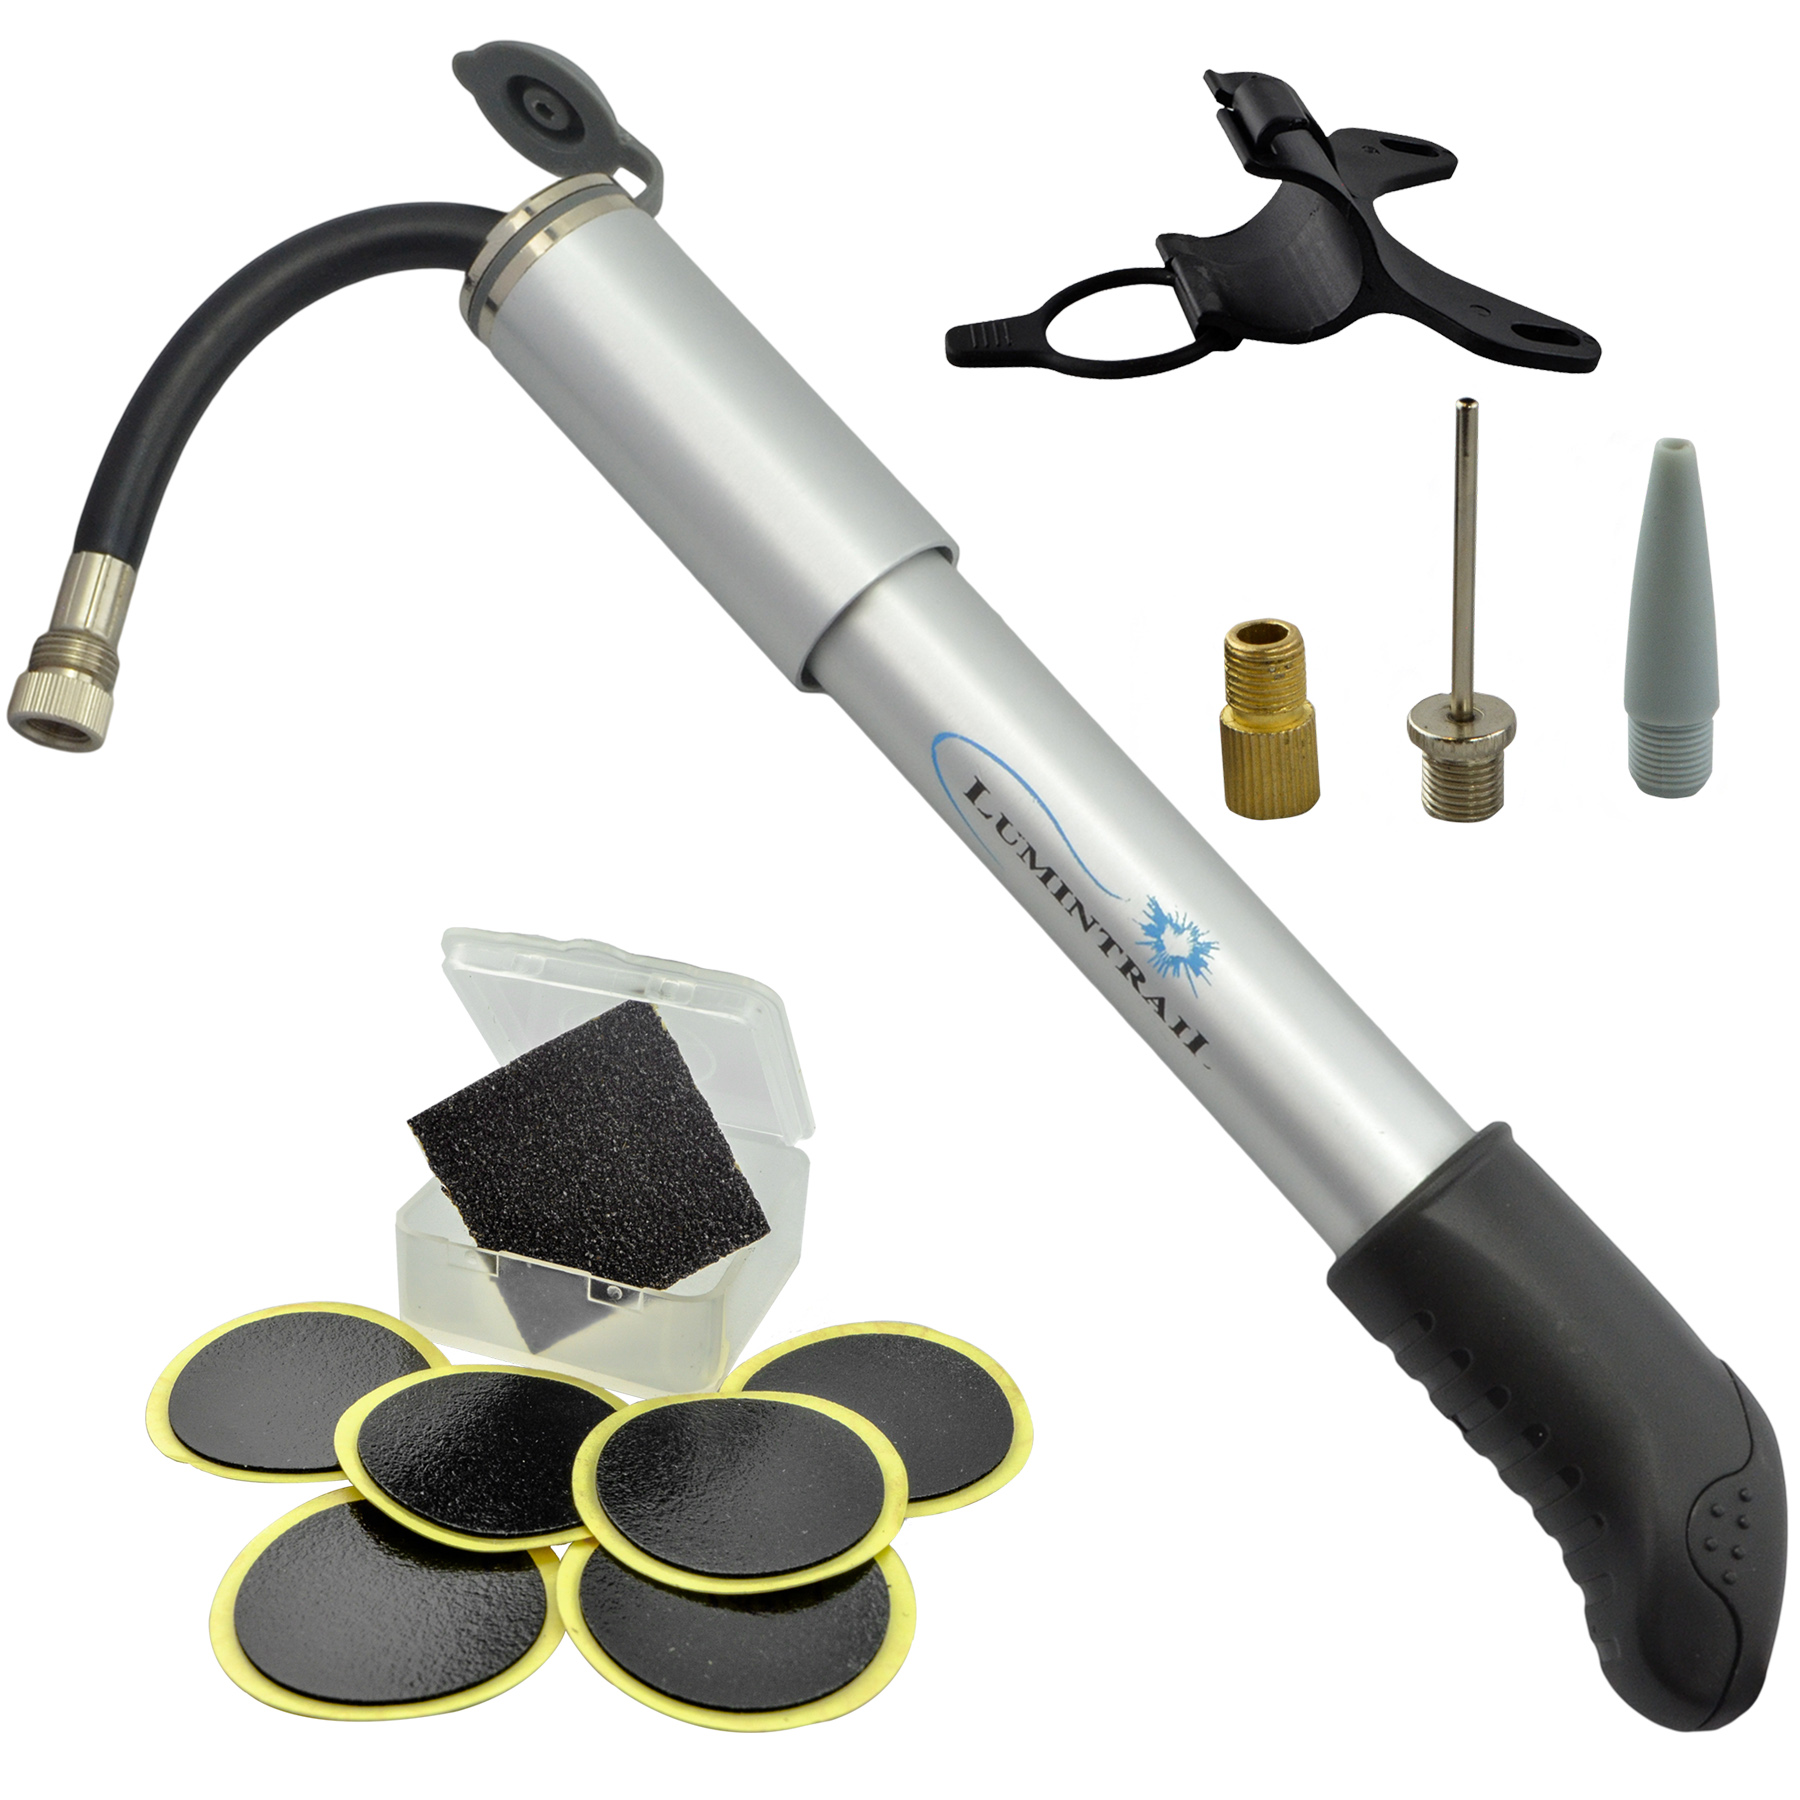 Lumintrail Mini Bike Pump and Glueless Puncture Repair Kit For Presta & Schrader w/ Retractable Hose, Frame Mount